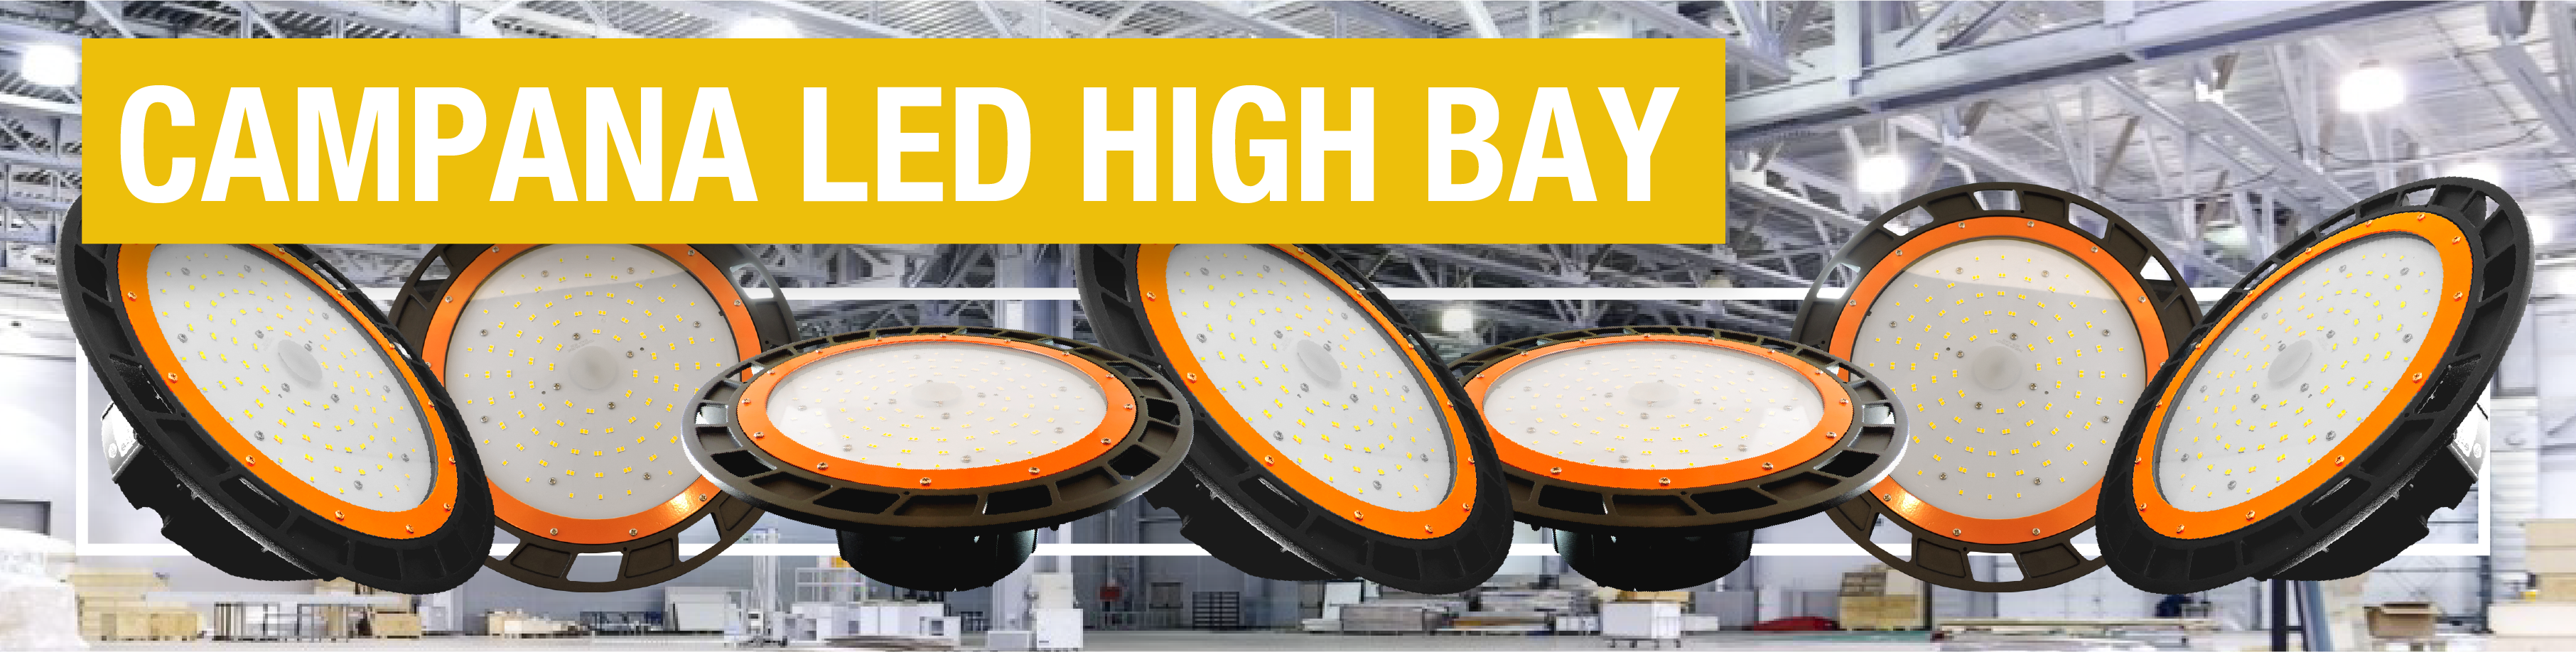 Campanas LED HighBay